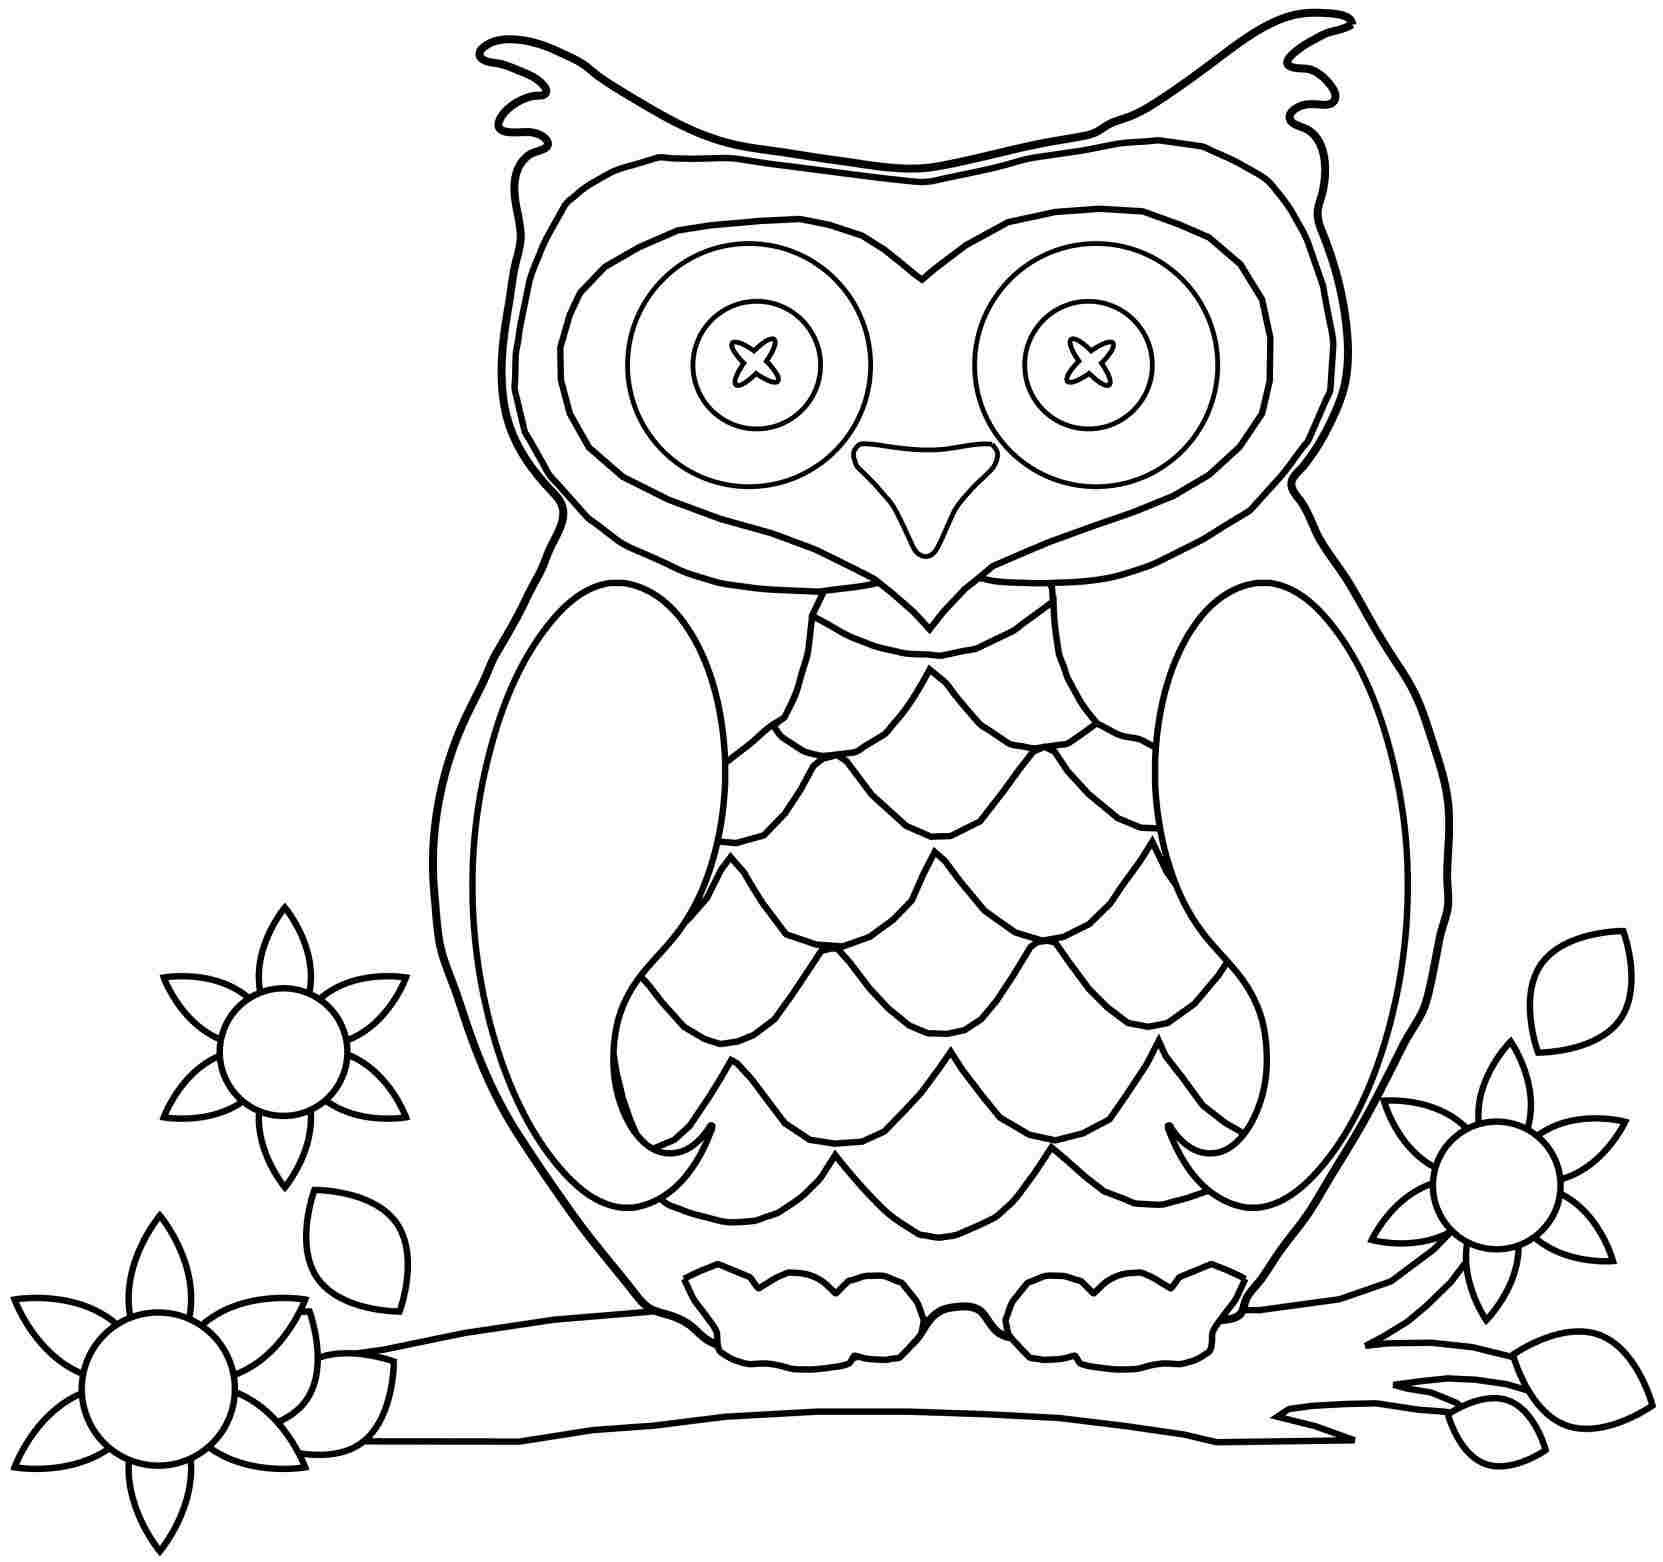 Uncategorized Free Colouring Pages free preschool fall coloring pages printable colouring sheets animal owl for girls boys